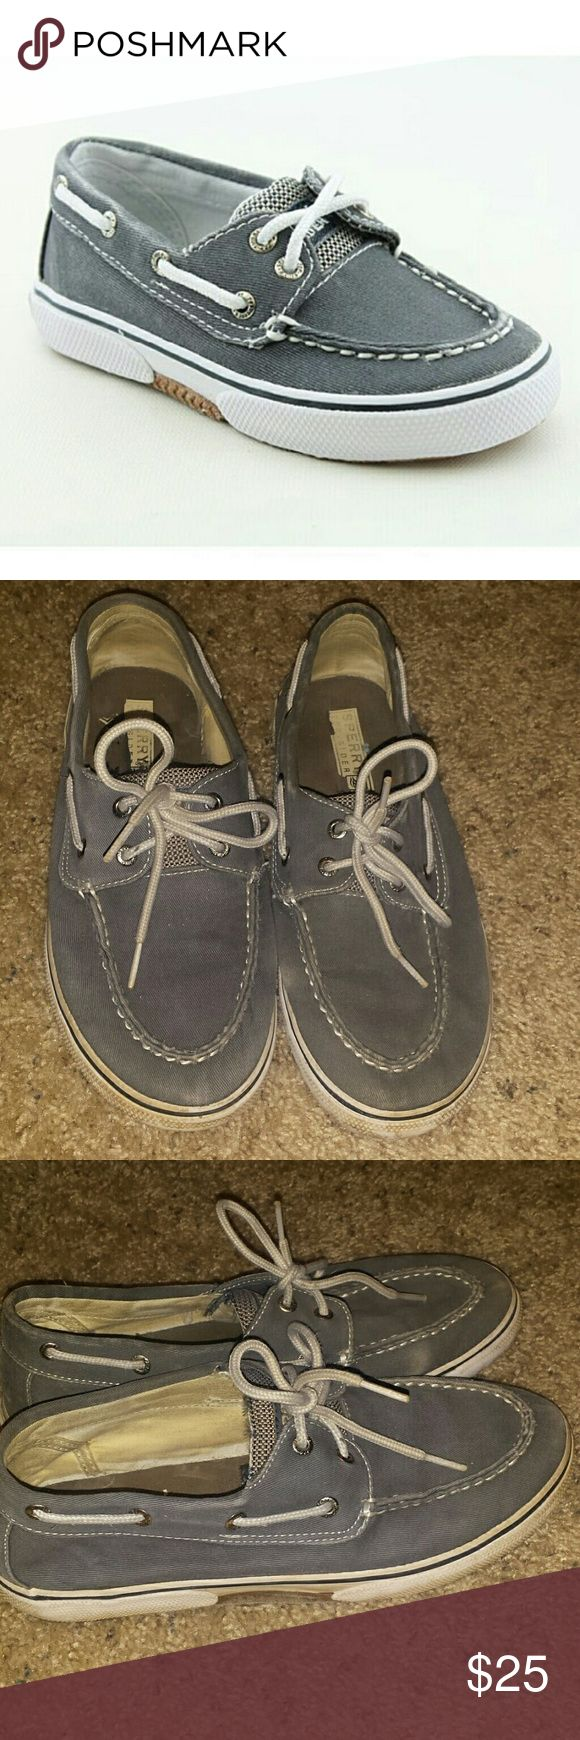 XMAS SALE !!!Gray blue sperrys Good condition but logo is worn off on the back size 4 kids which Is equivalent to a 6 women's adult ! (: Sperry Top-Sider Shoes Flats & Loafers